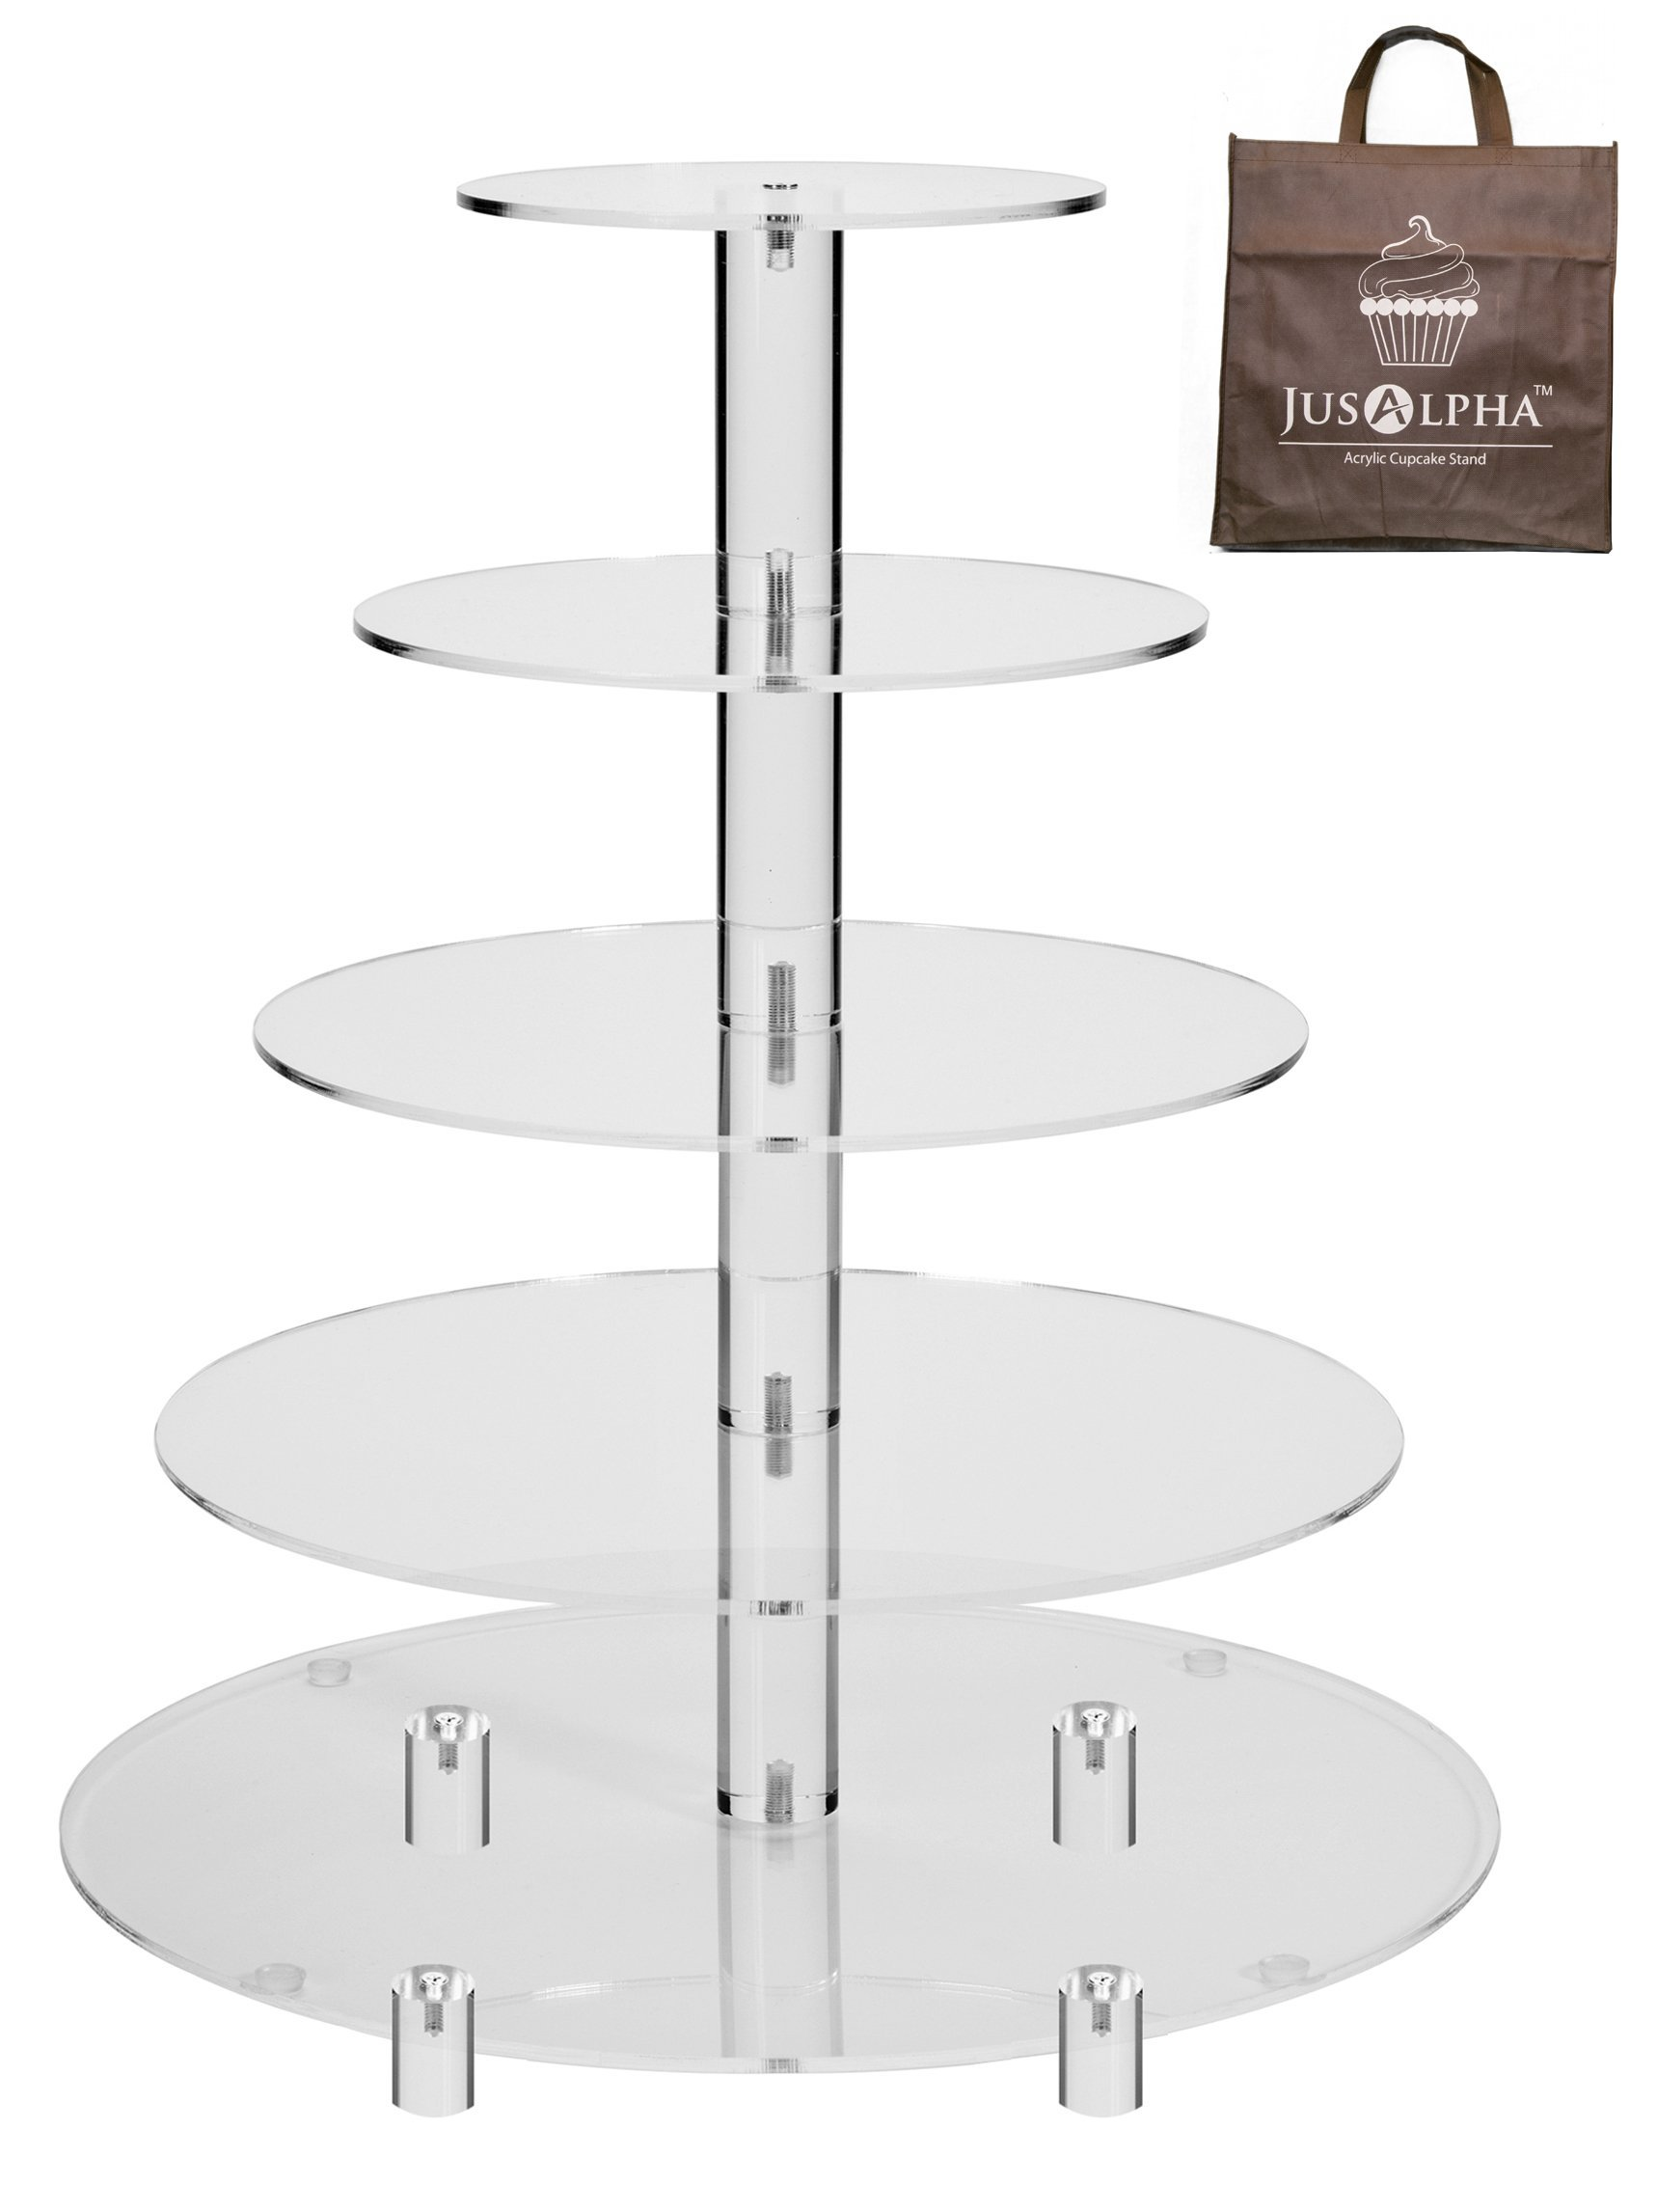 Jusalpha Large 5-Tier Acrylic Round Wedding Cake Stand/Cupcake Stand Tower/Dessert Stand/Pastry Serving Platter/Food Display Stand (5RF) by Jusalpha